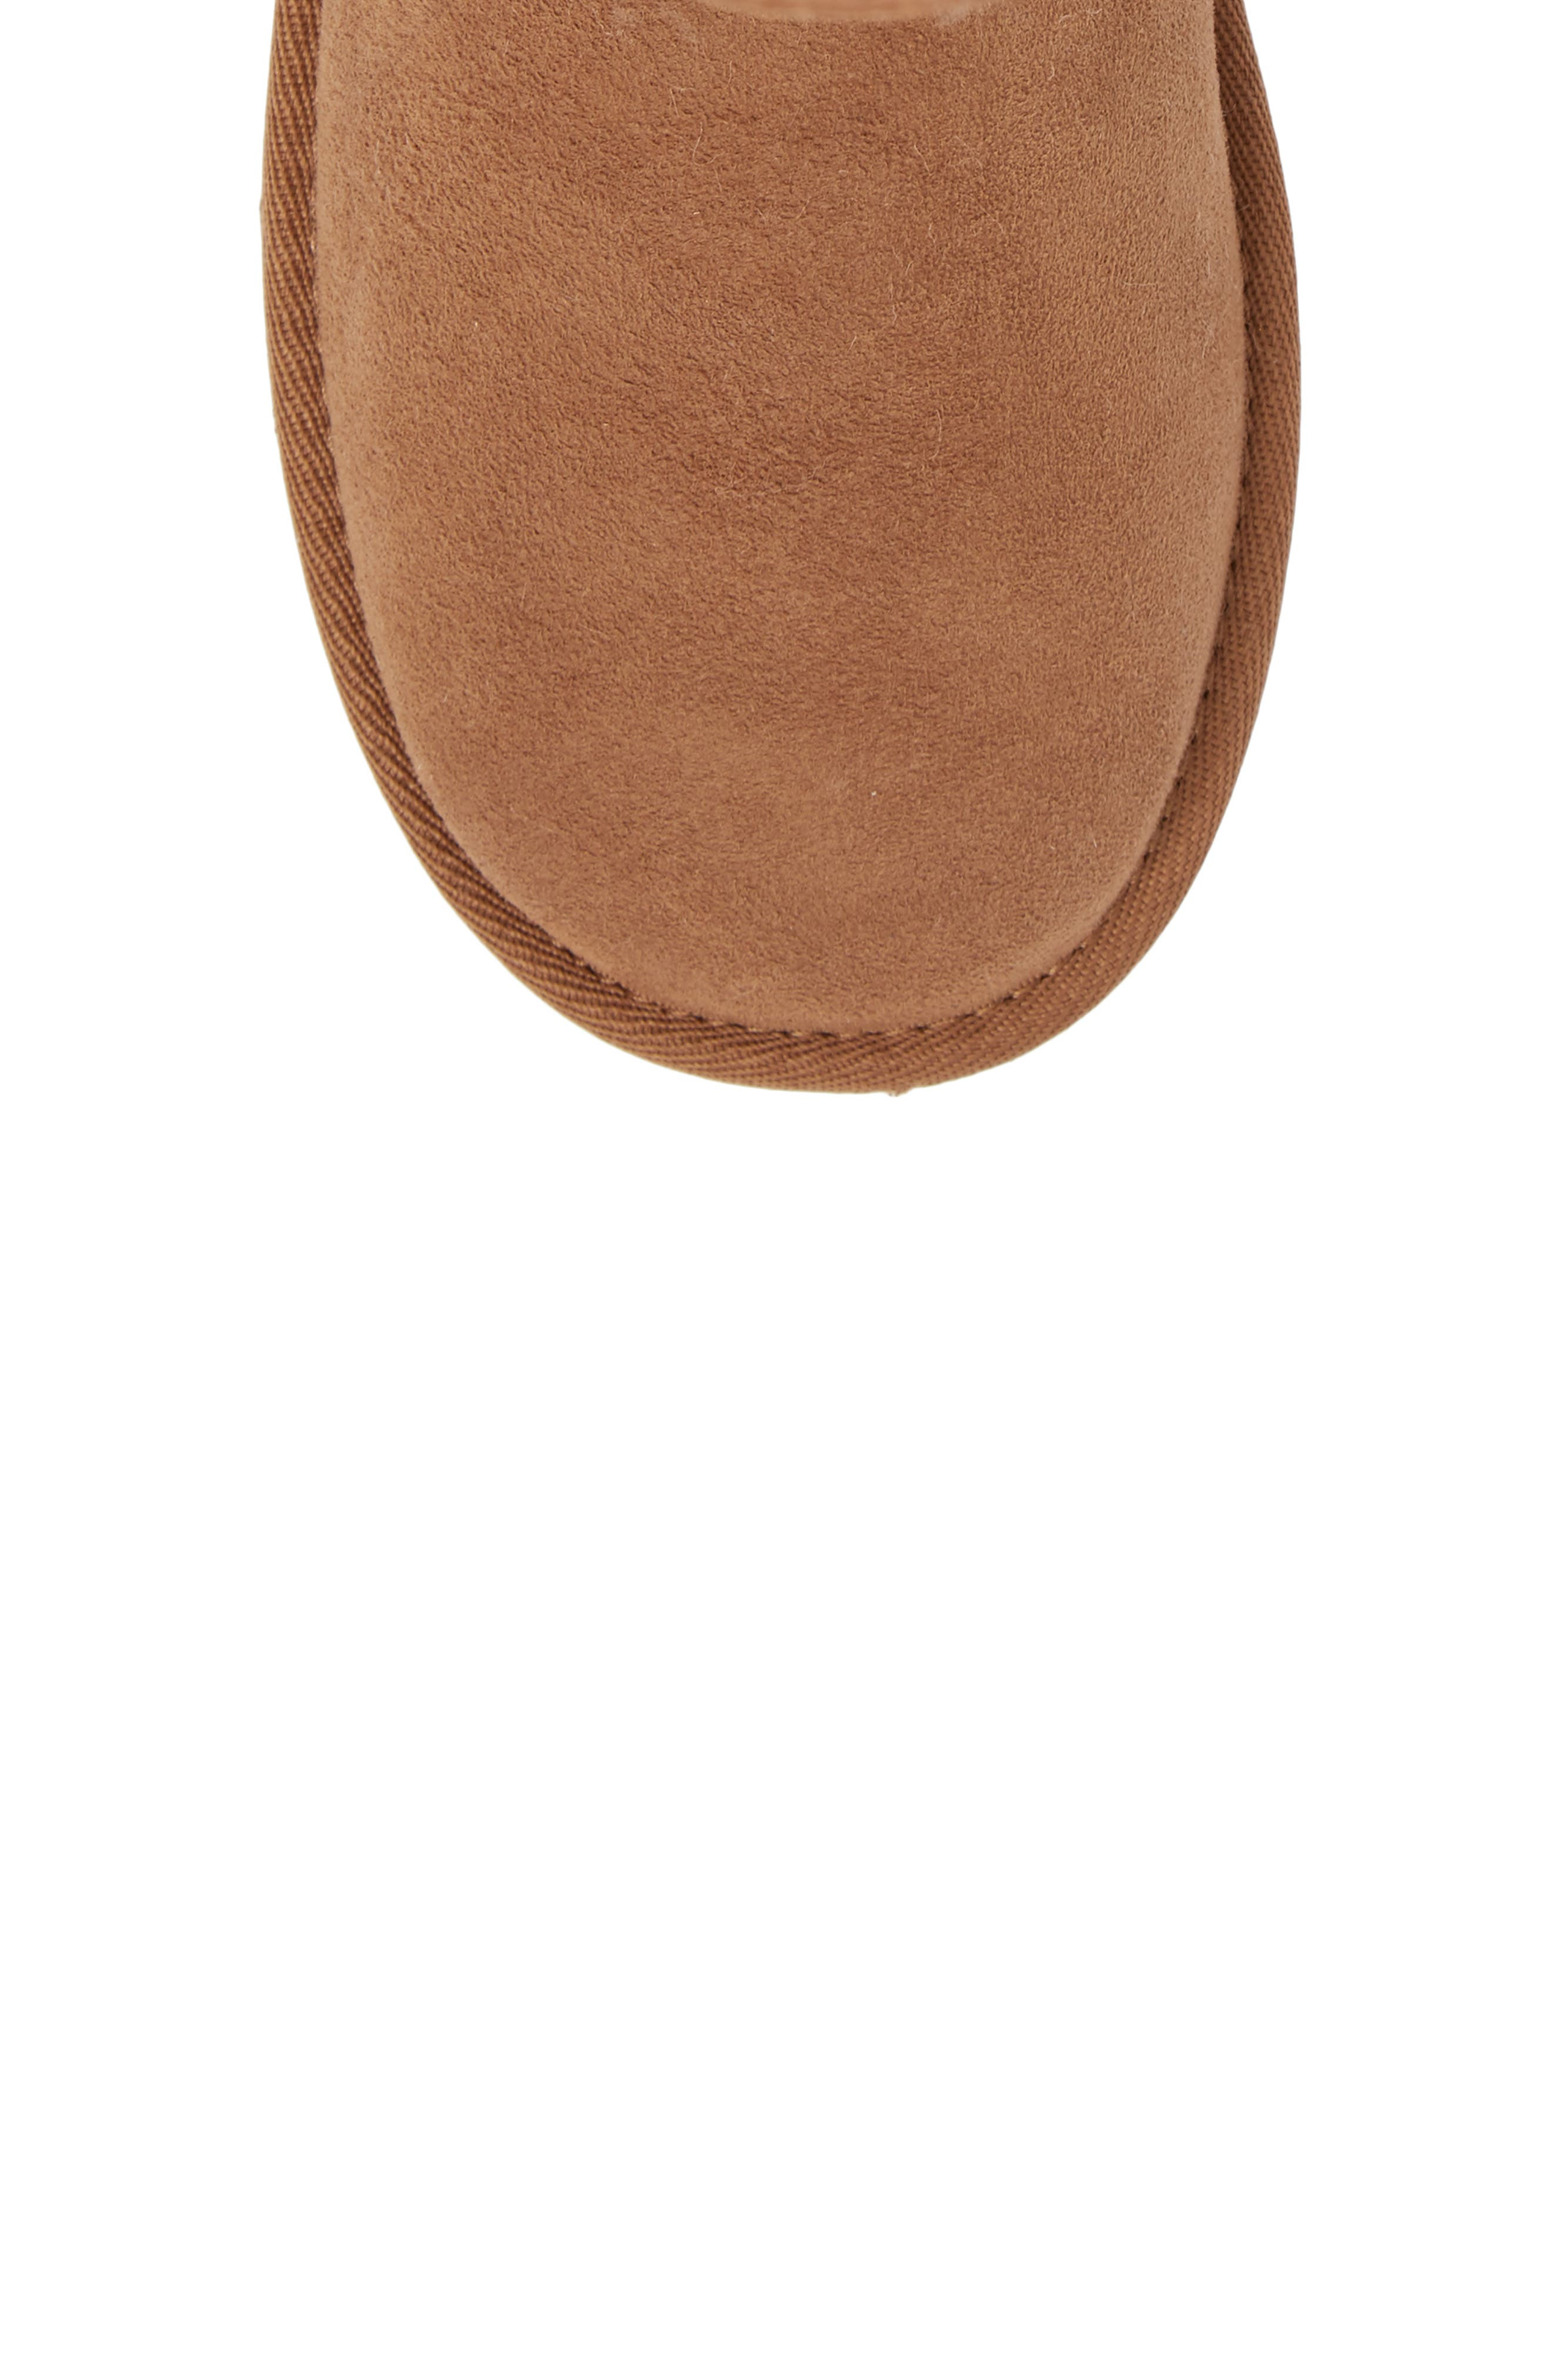 UGG<SUP>®</SUP>, Bailey Bow Tall II Water Resistant Genuine Shearling Boot, Alternate thumbnail 5, color, CHESTNUT BROWN